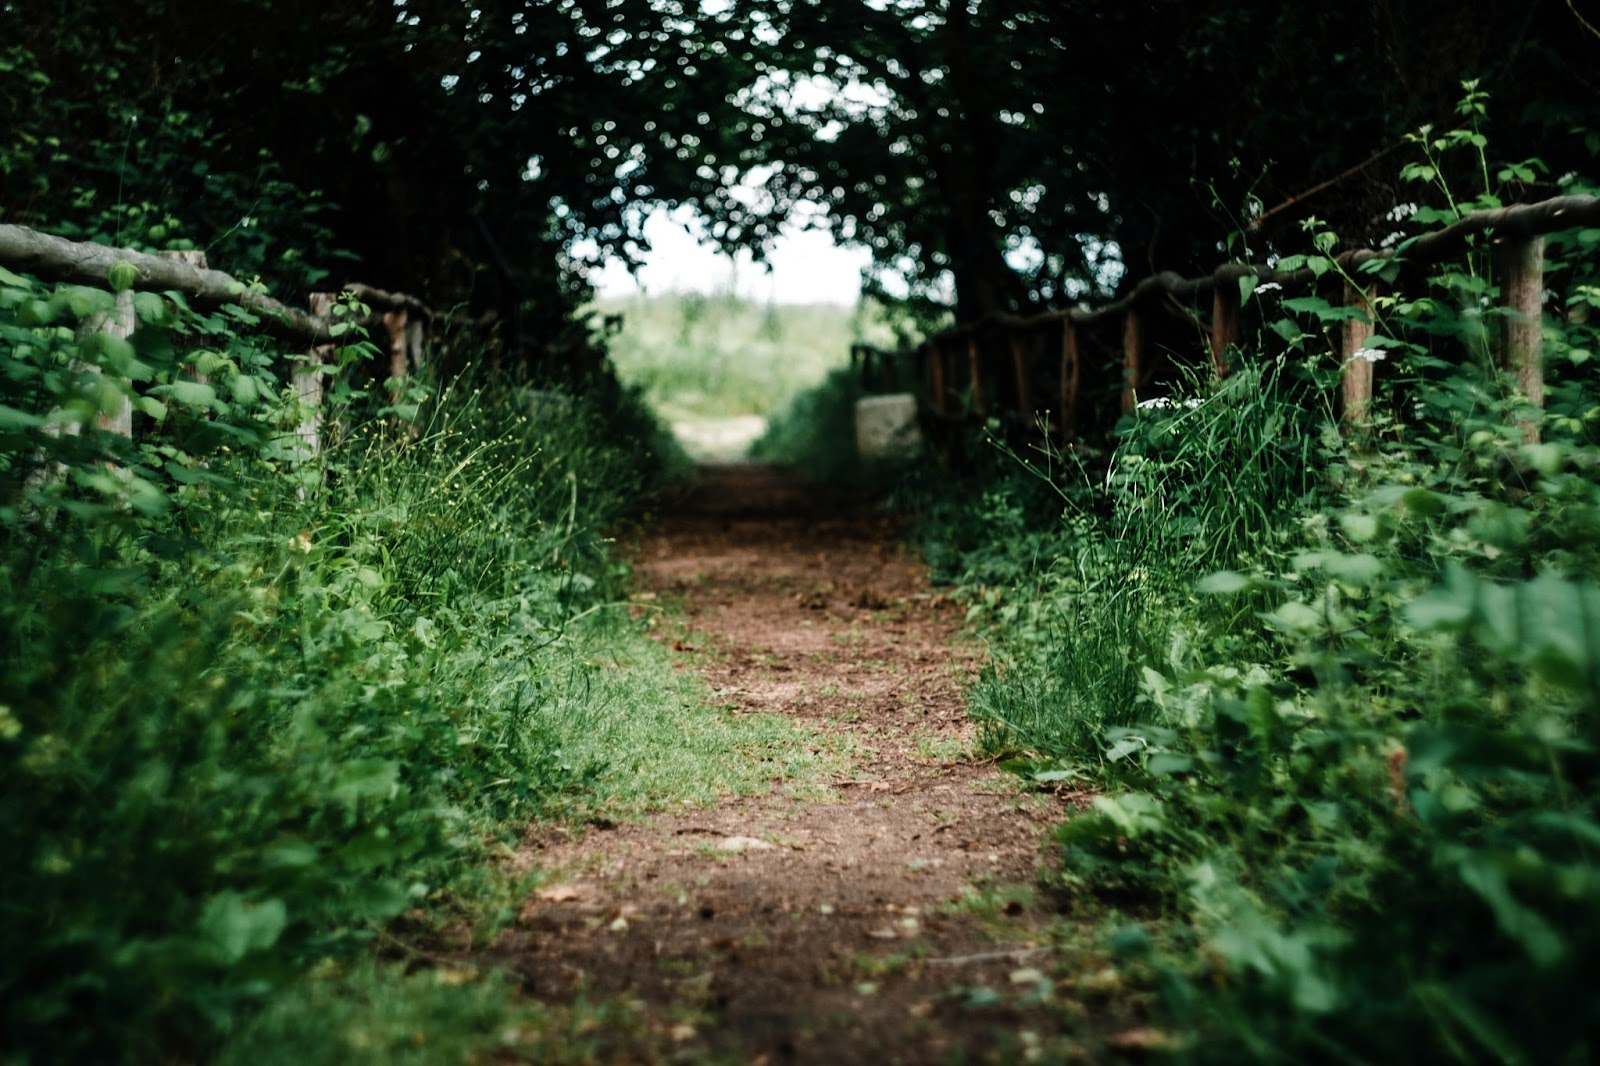 Small path outdoors surrounded by green plants and a wooden fence